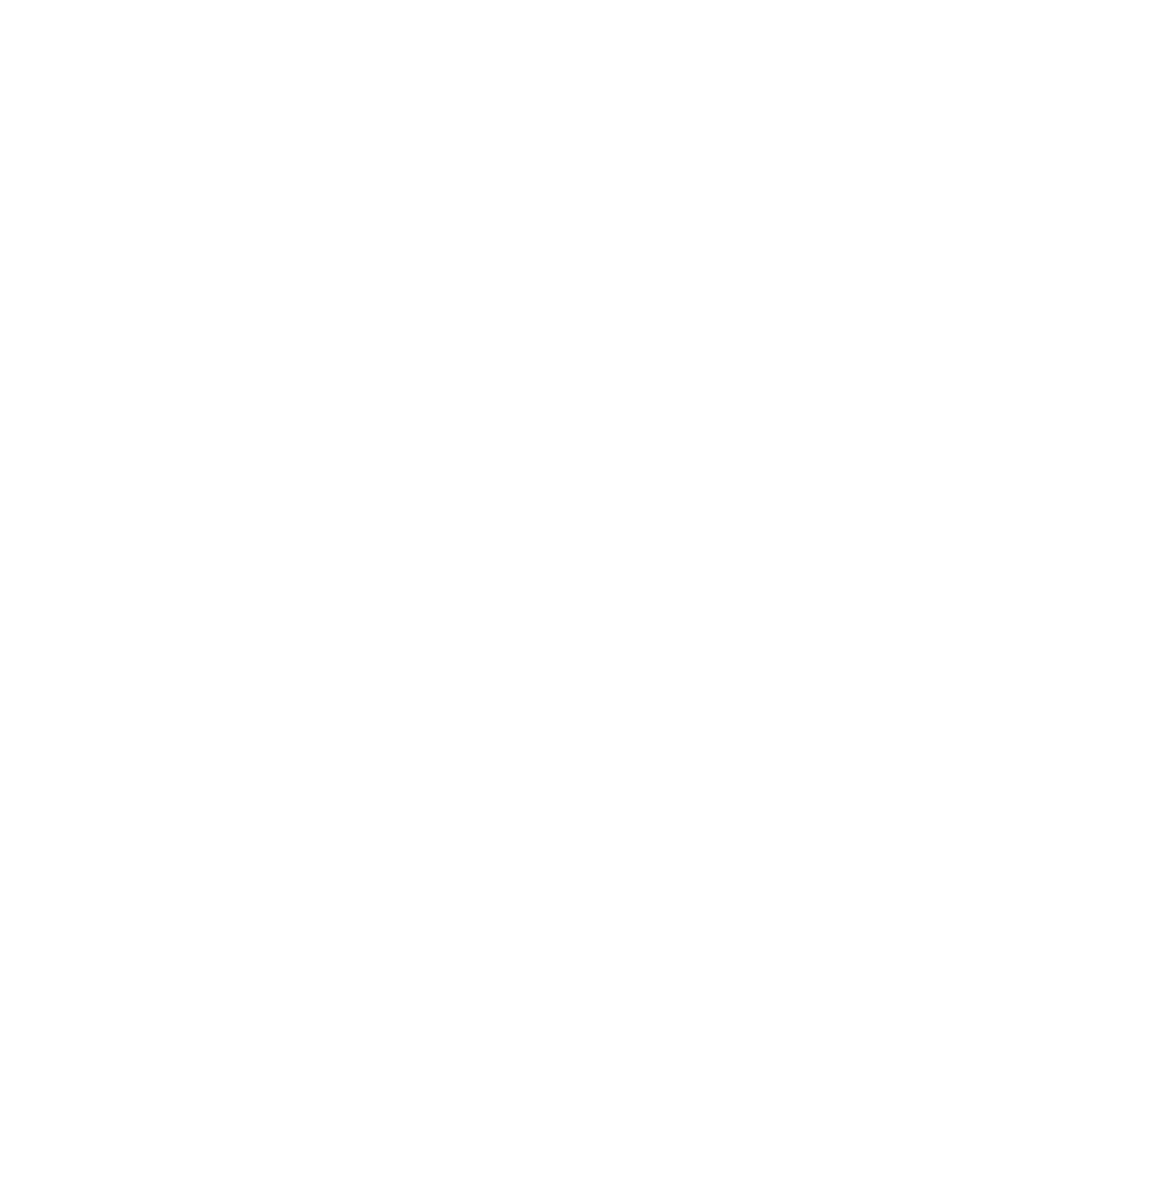 Adra Colombia